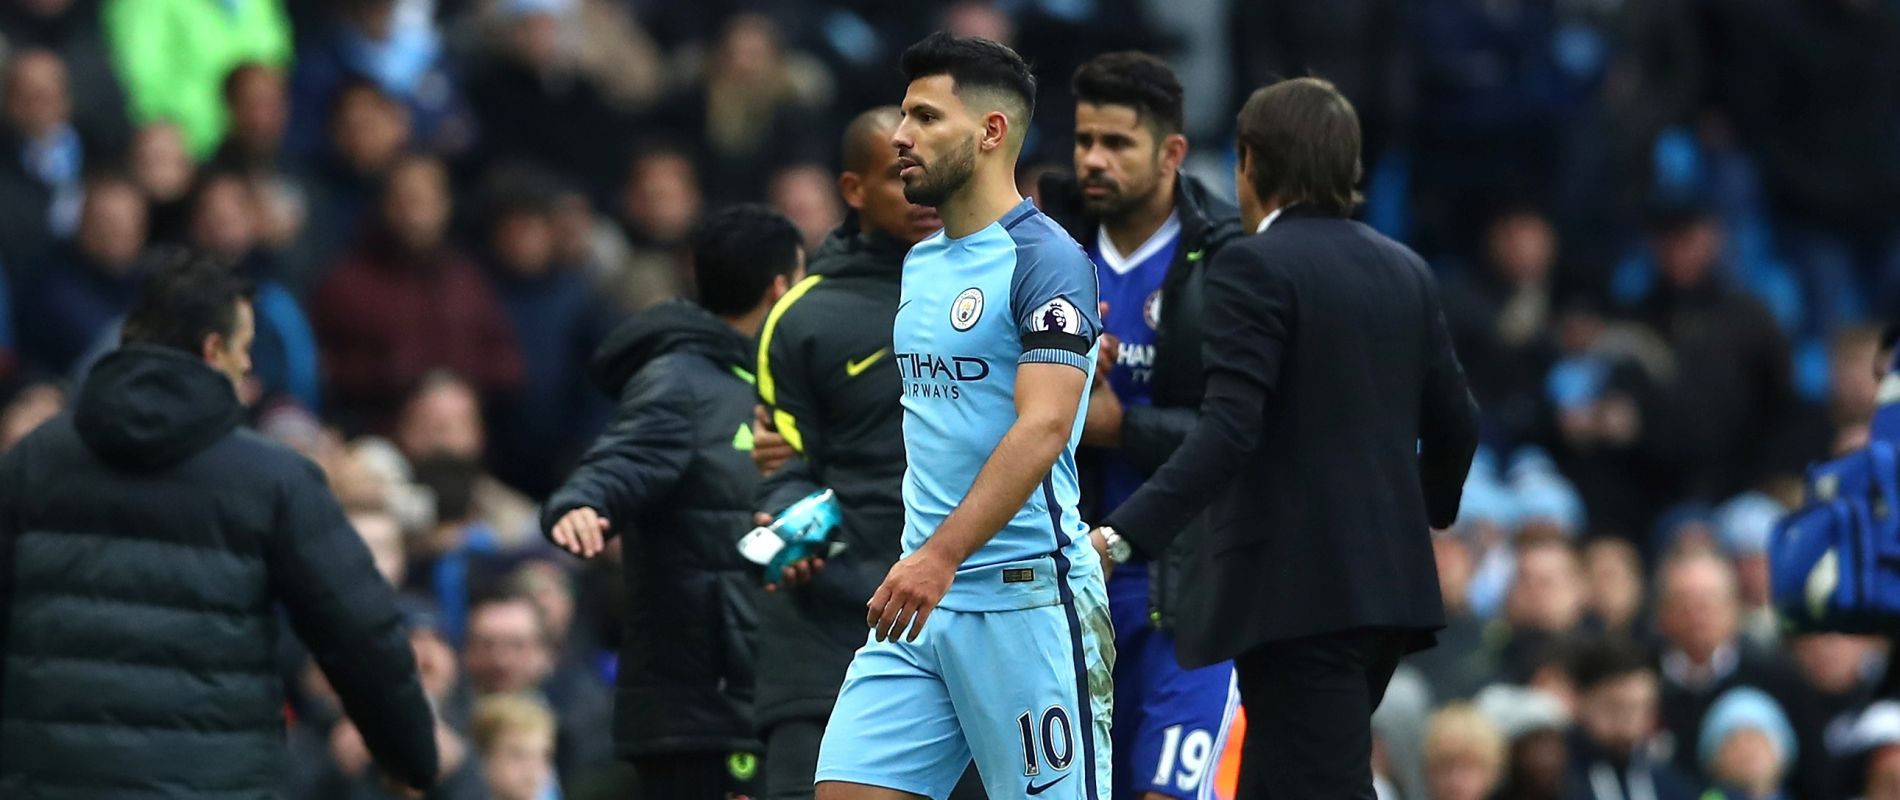 Another one bites the dust - Aguero is sent off against Chelsea as the red cards stack up against City this season.